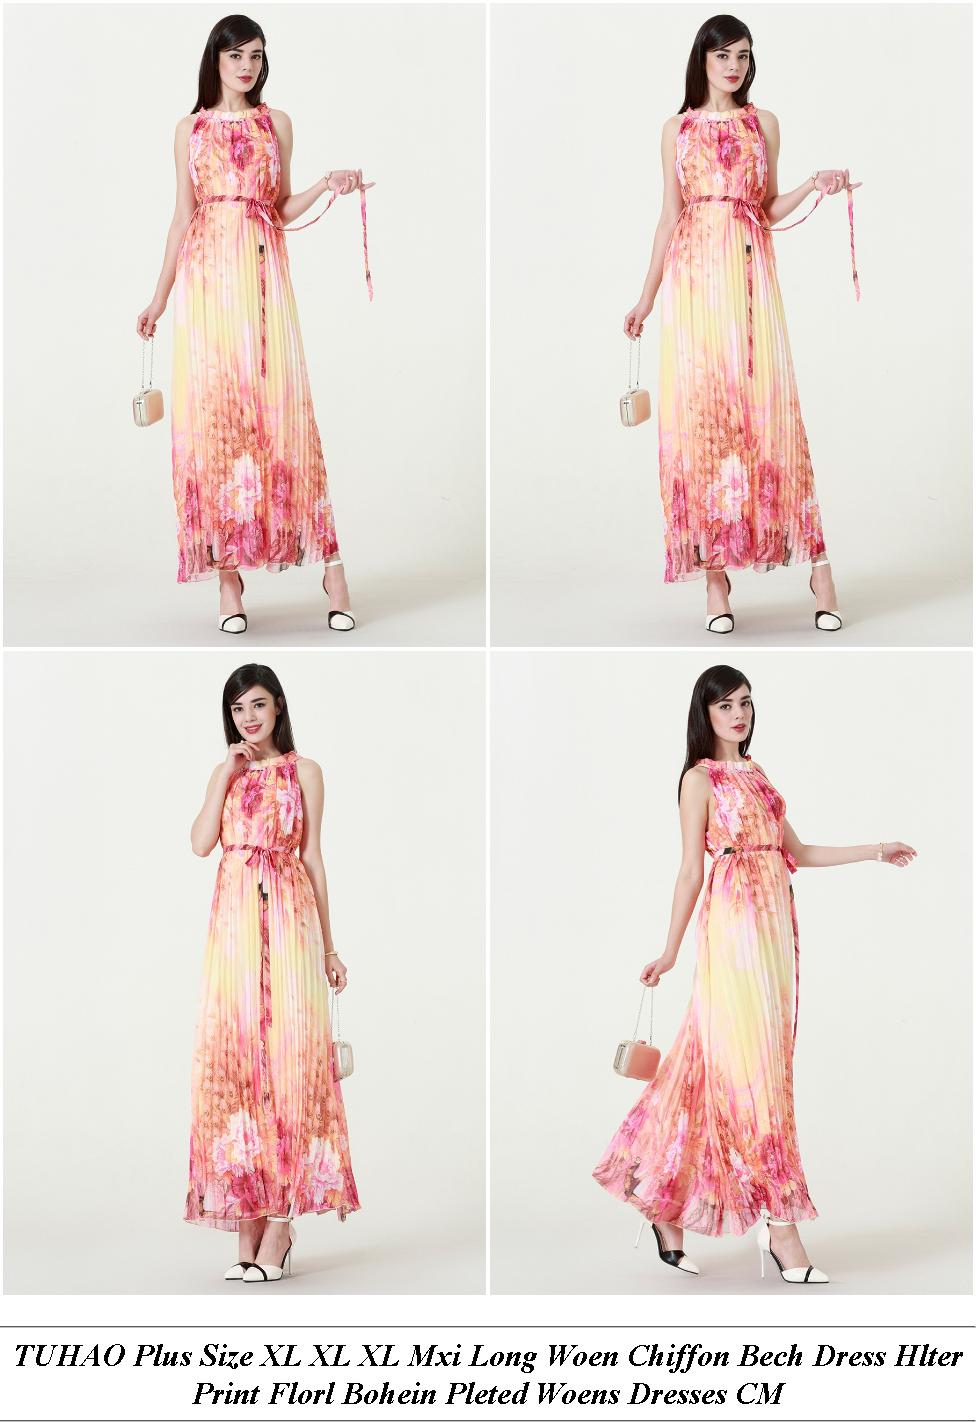 Maxi Dresses For Women - Off Sale - Green Dress - Cheap Online Clothes Shopping